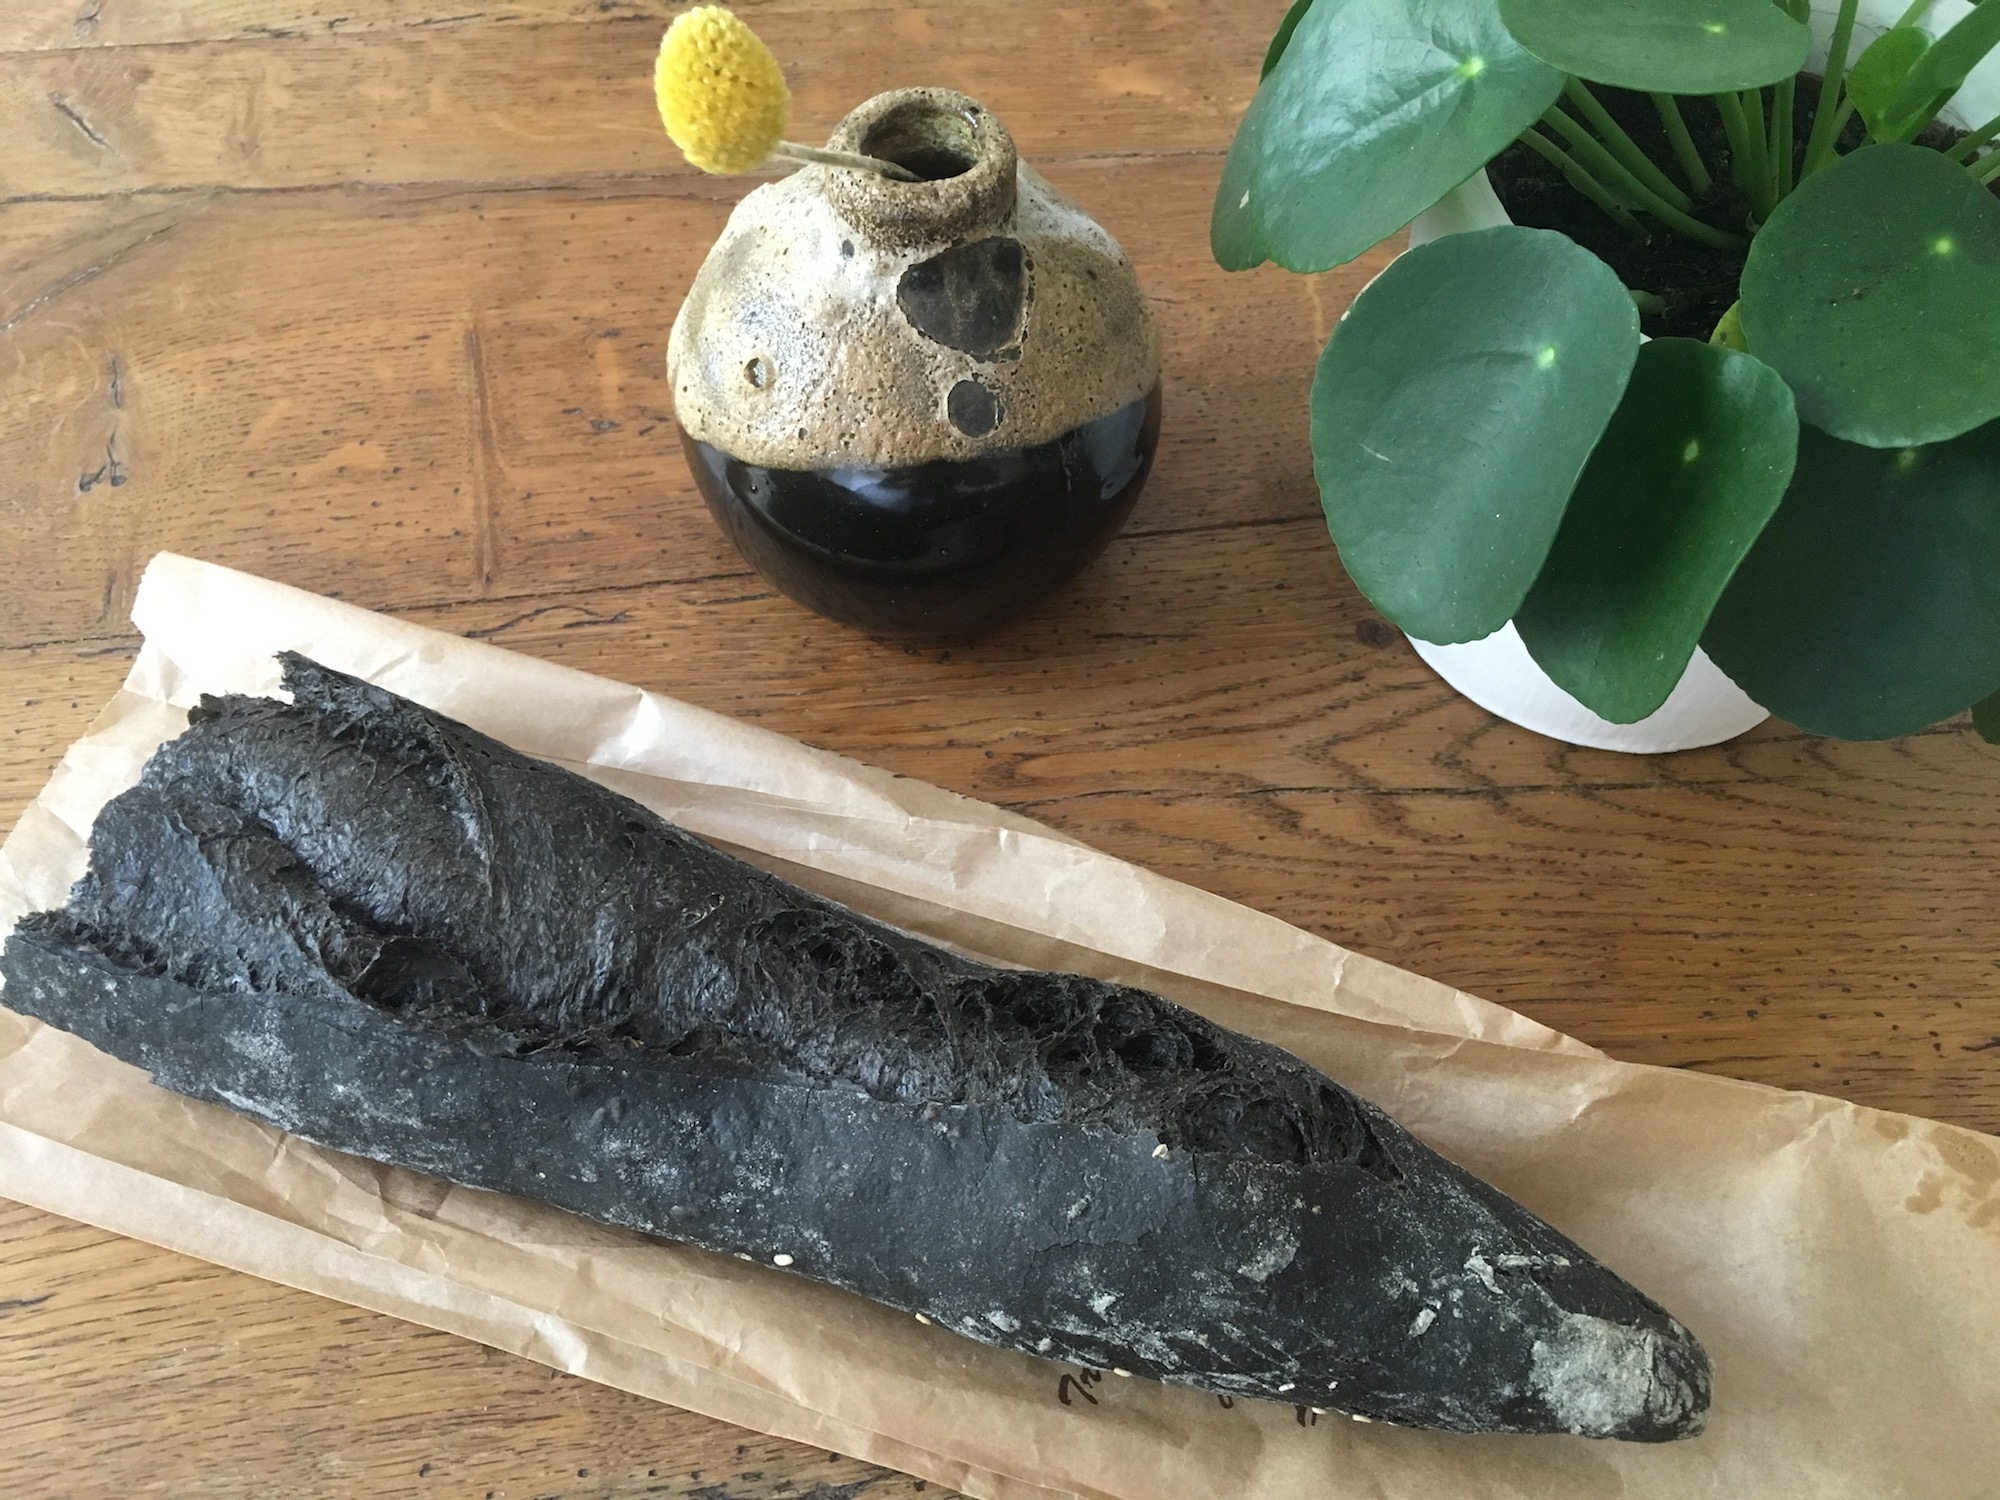 Black bread at Paris bakeries is trending, including black baguette.